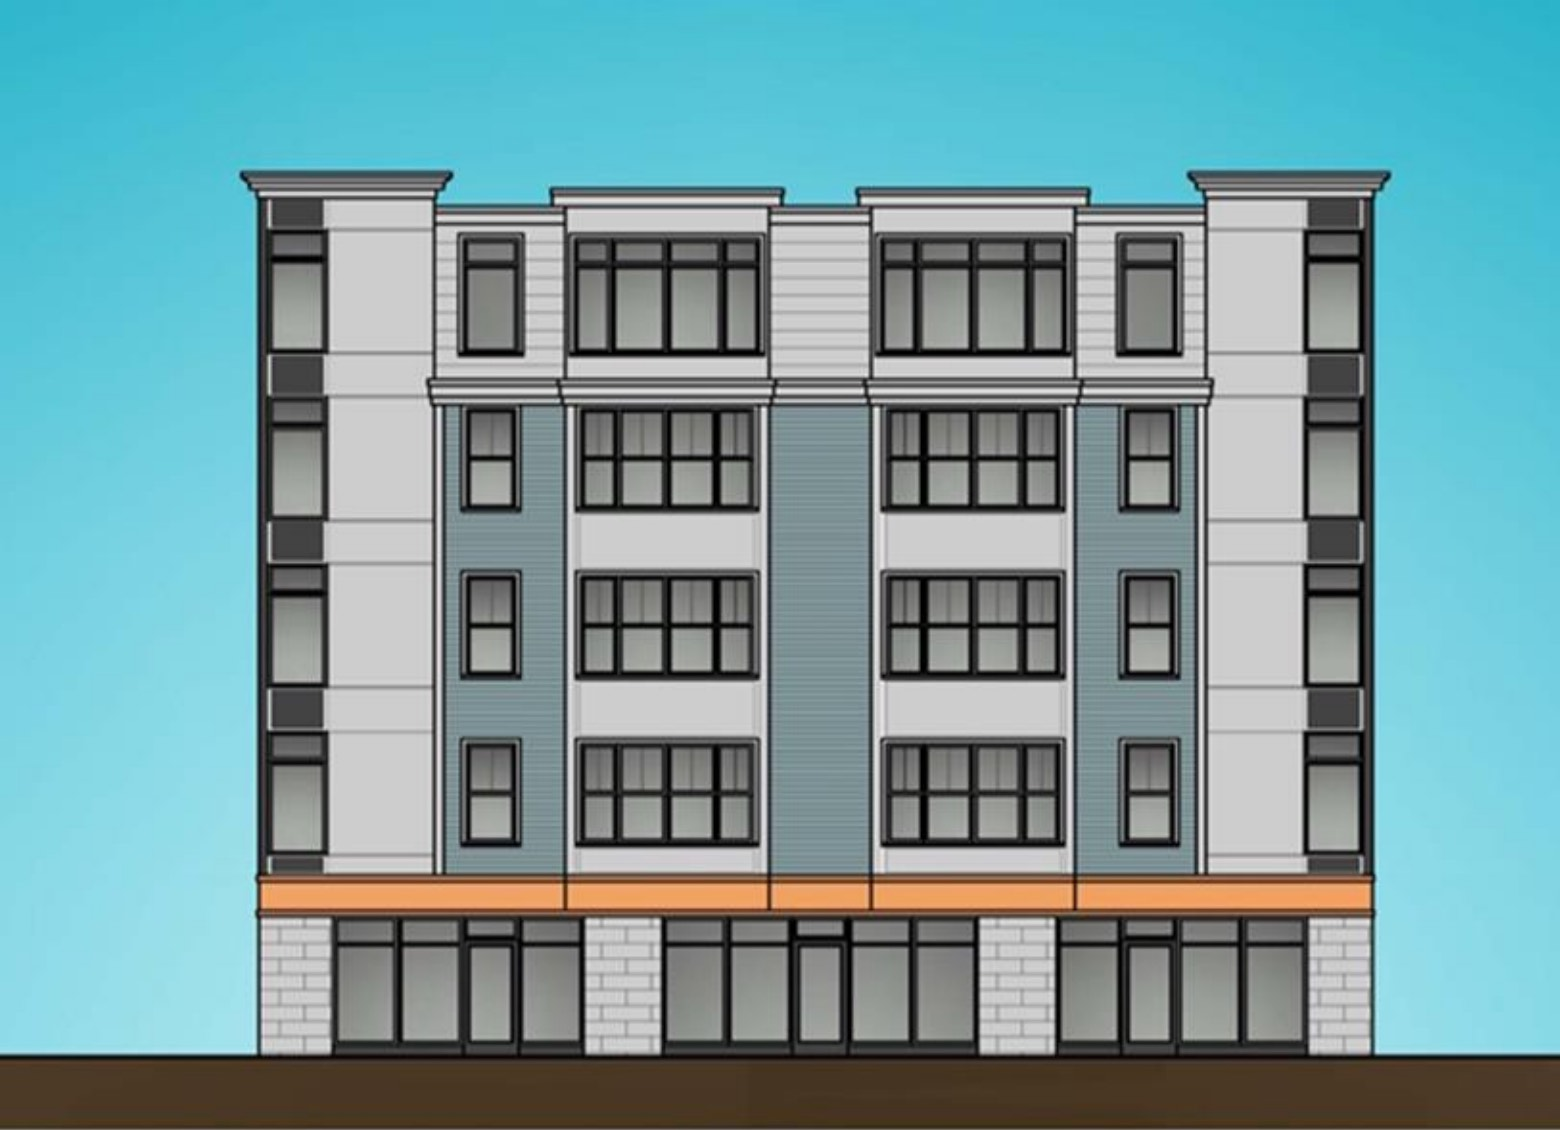 734 dudley street dorchester uphams corner proposed residential retail development